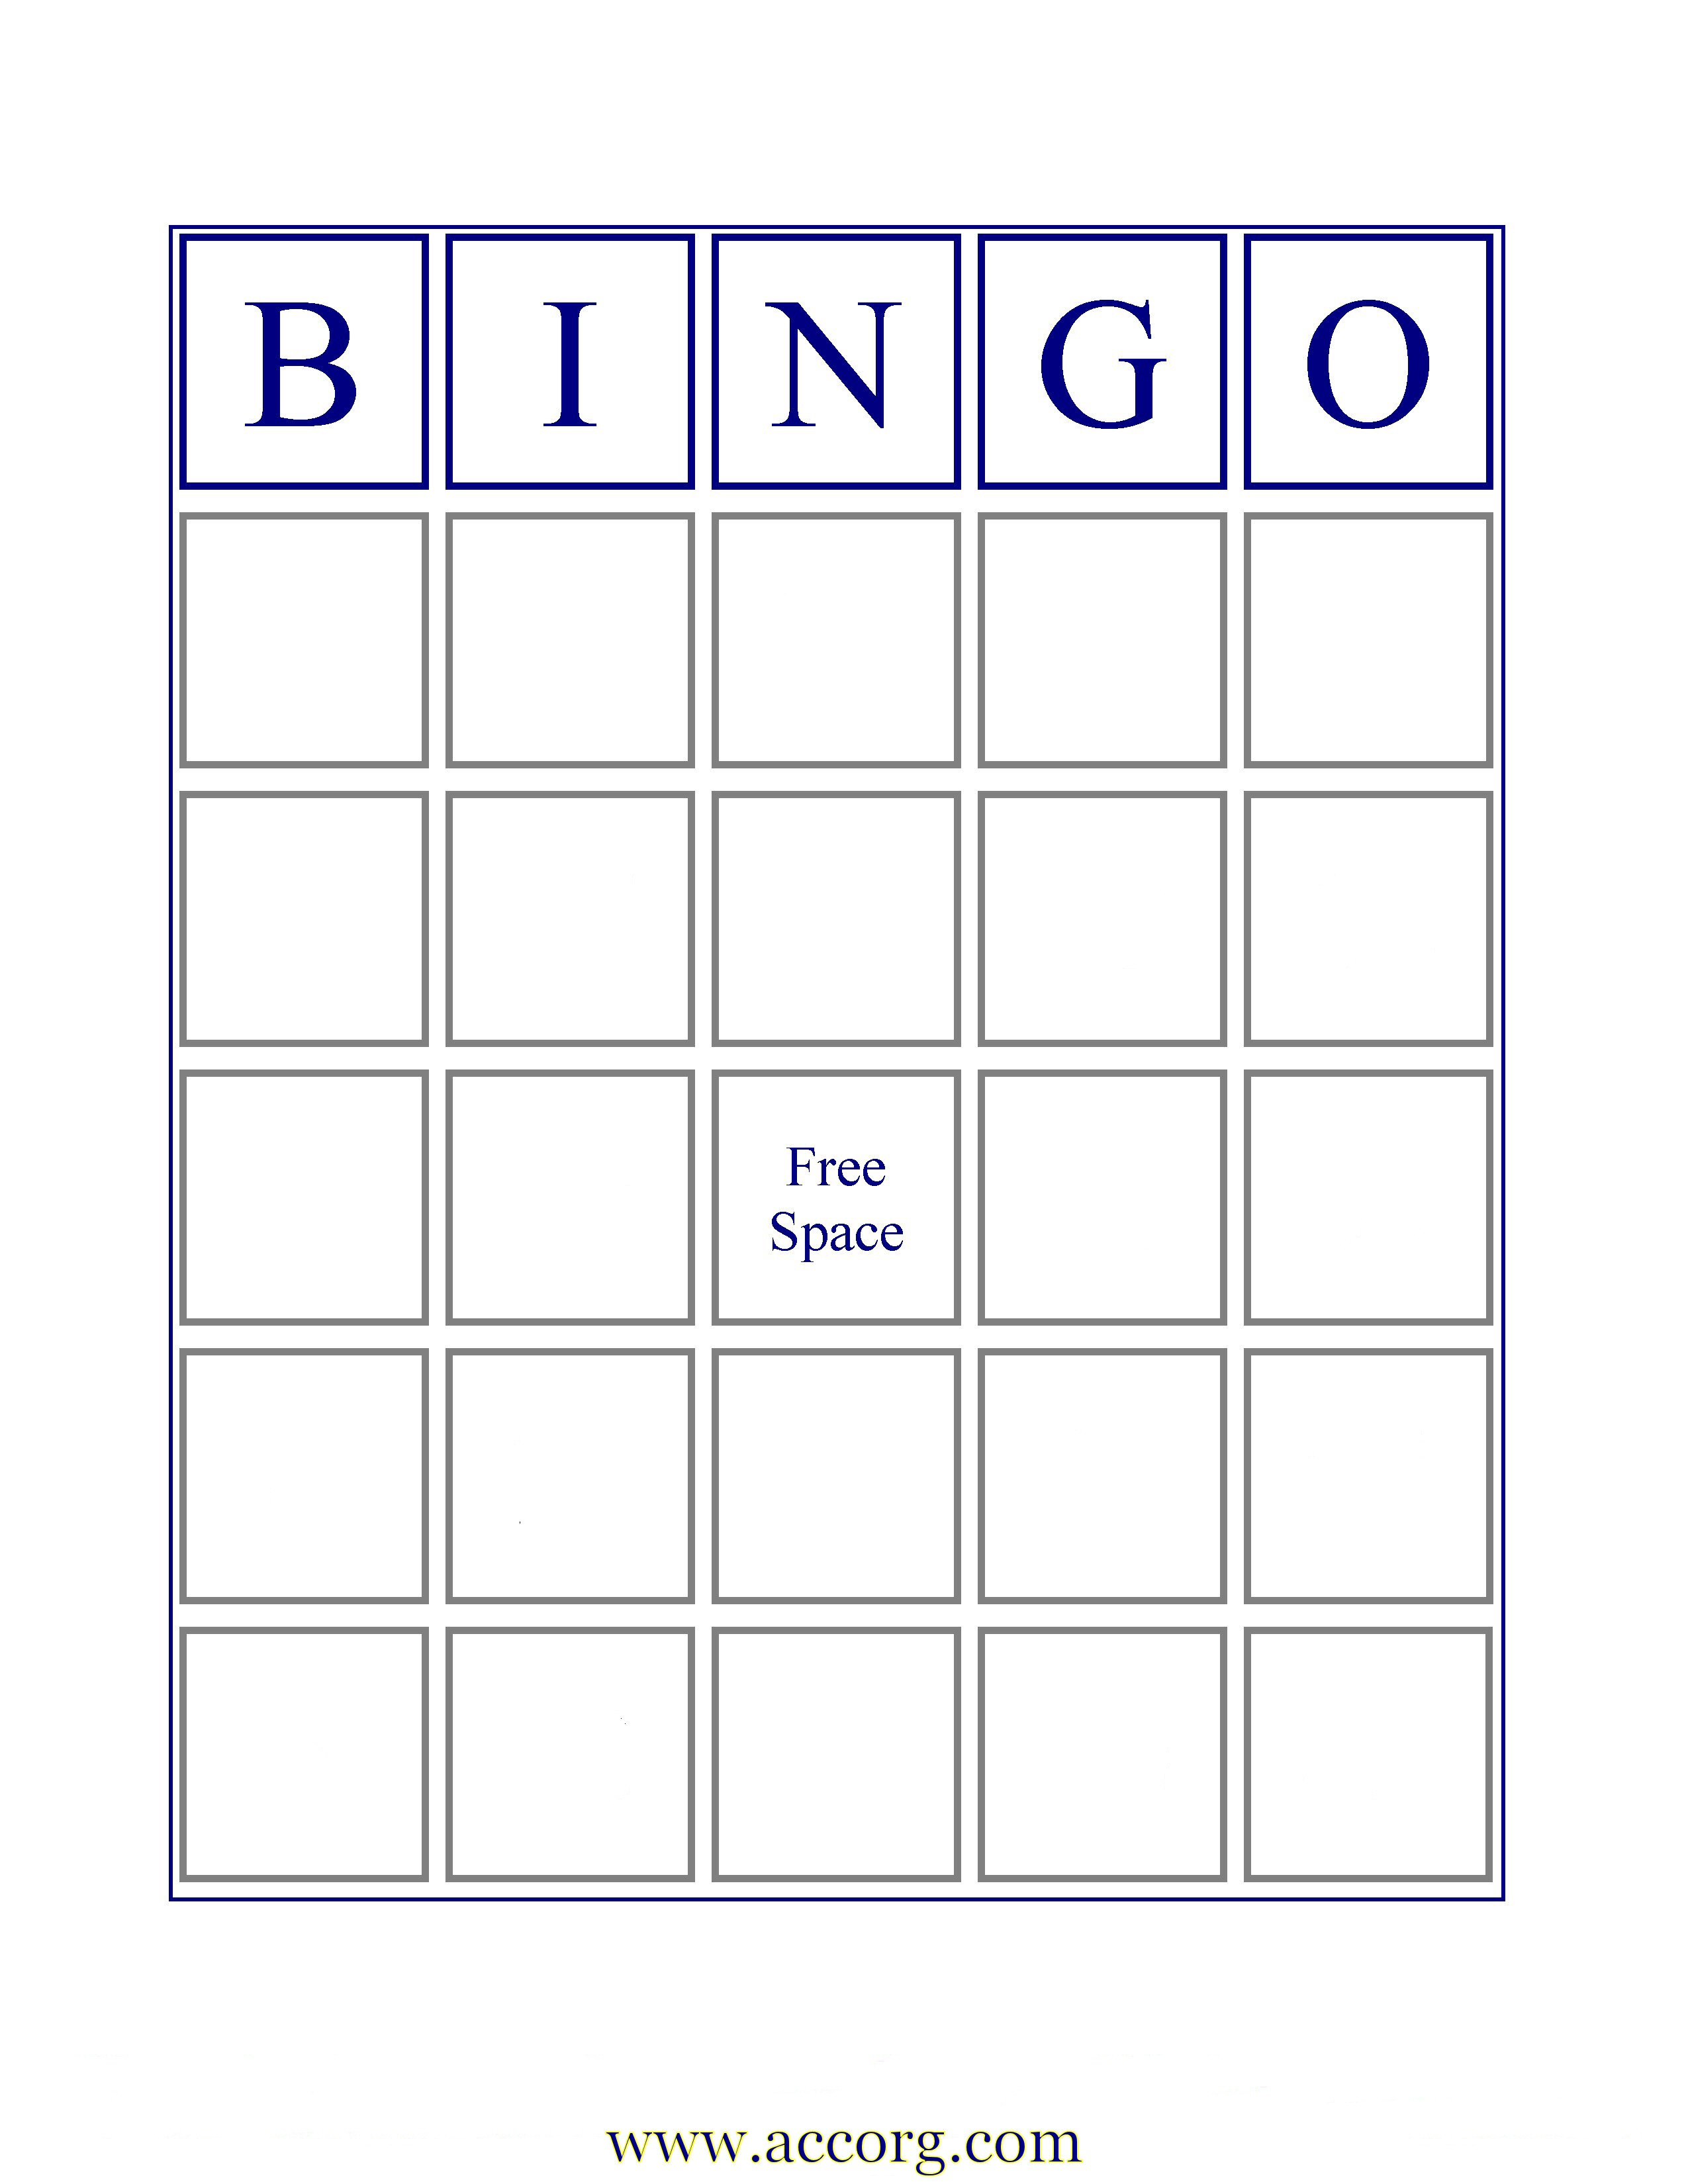 if you want an image of a standard bingo card with b i n g o across